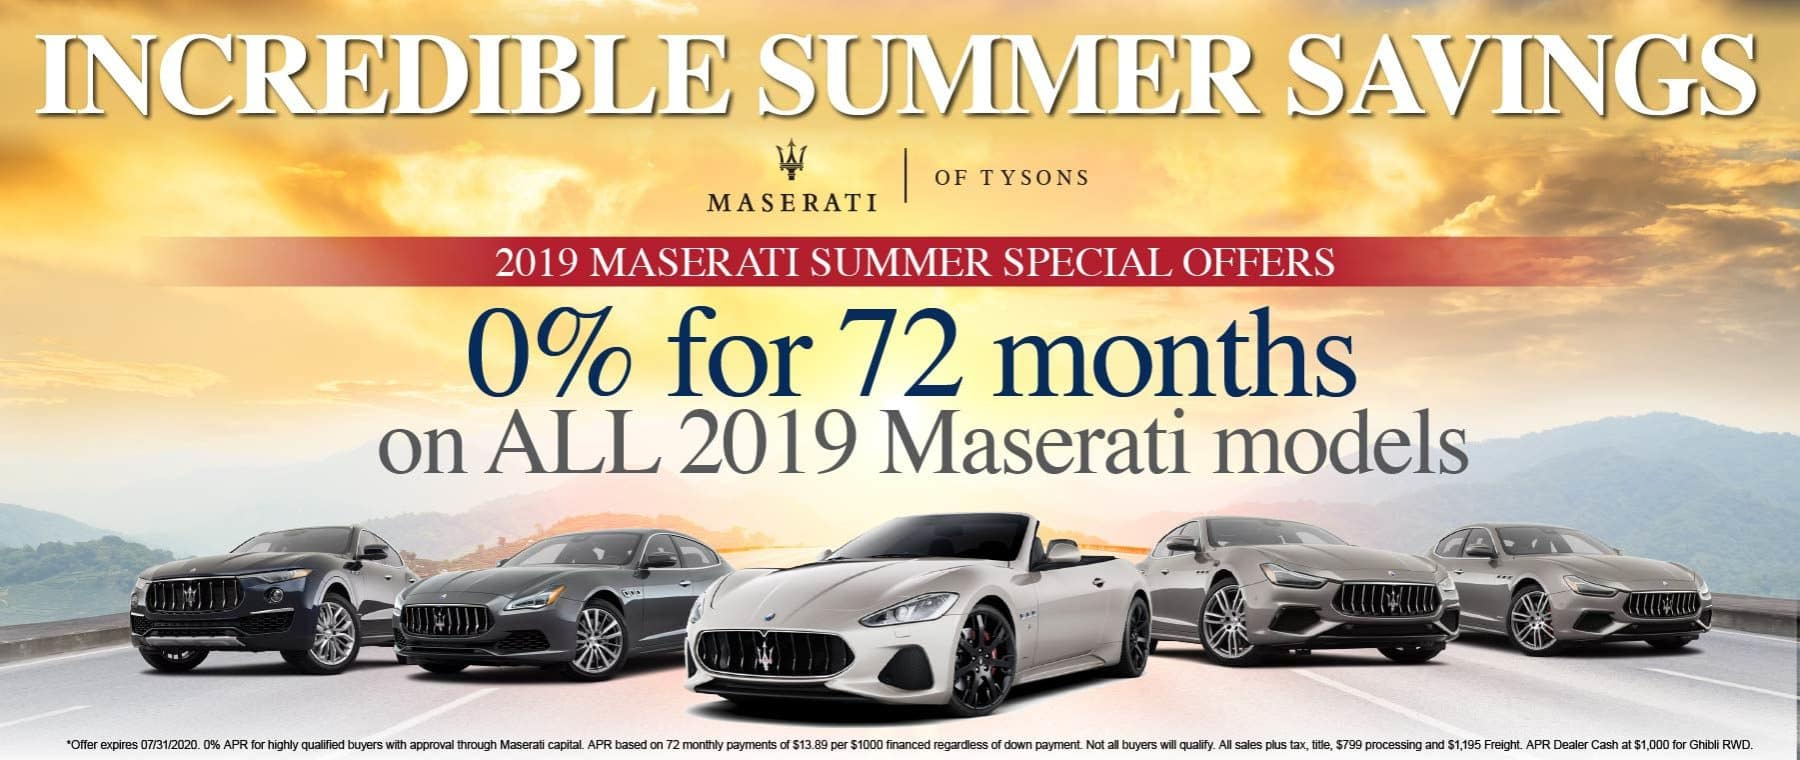 Incredible Summer Savings. 2019 Maserati Special Offers. 0% for 72 months on all 2019 Maserati models.